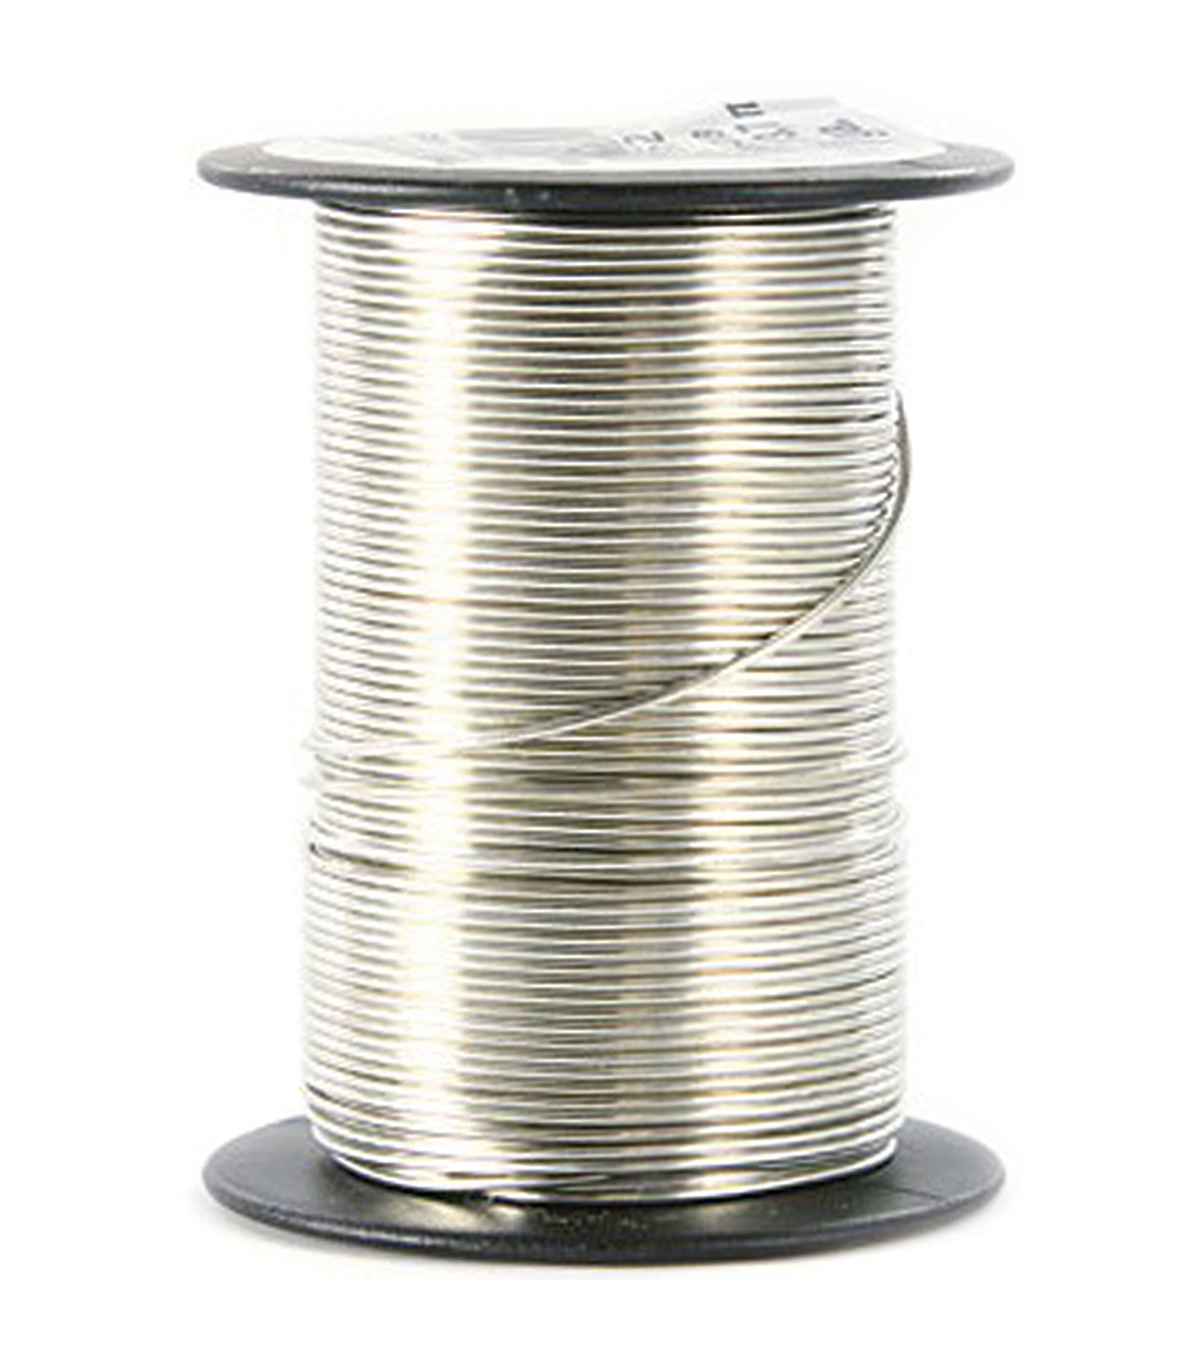 20 Gauge Wire 12 Yards/Pkg-Silver | JOANN